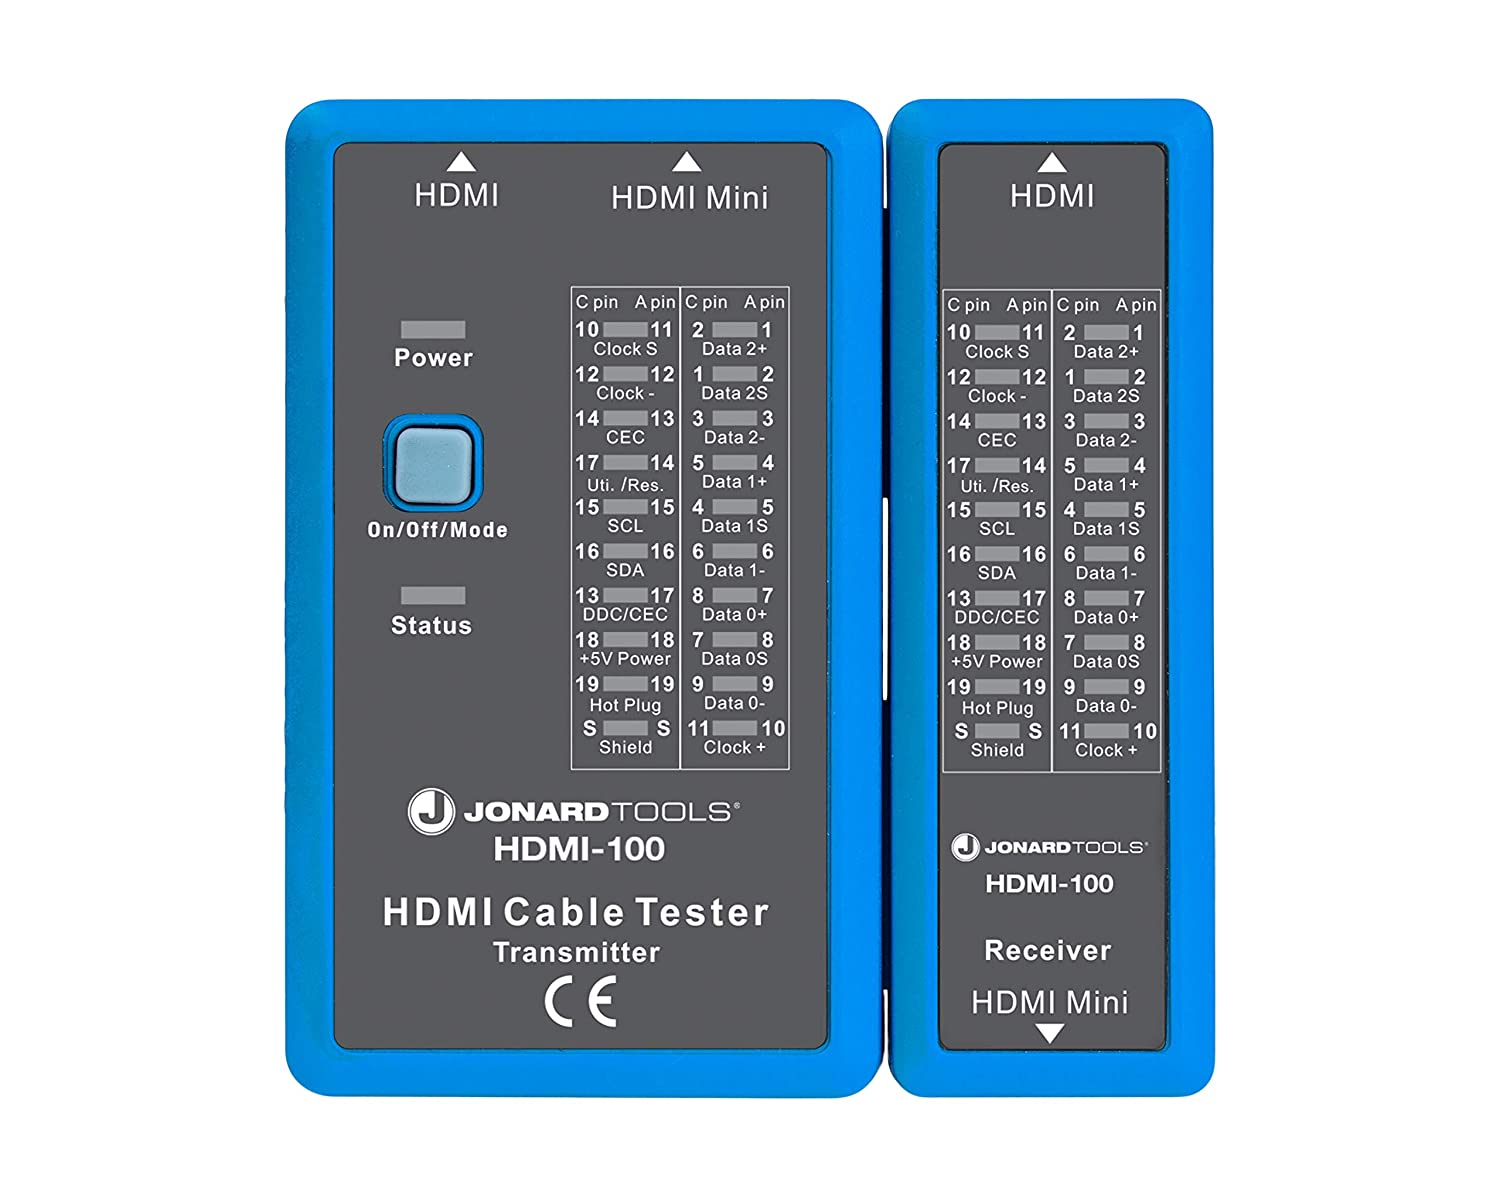 RICH Handheld Cable Tester,HDMI//Mini-HDMI HD Cable Tester,Portable High Definition Cable Tester Checker for Missing Lines,Short Circuits Breaks and Crosses,18x11x15cm